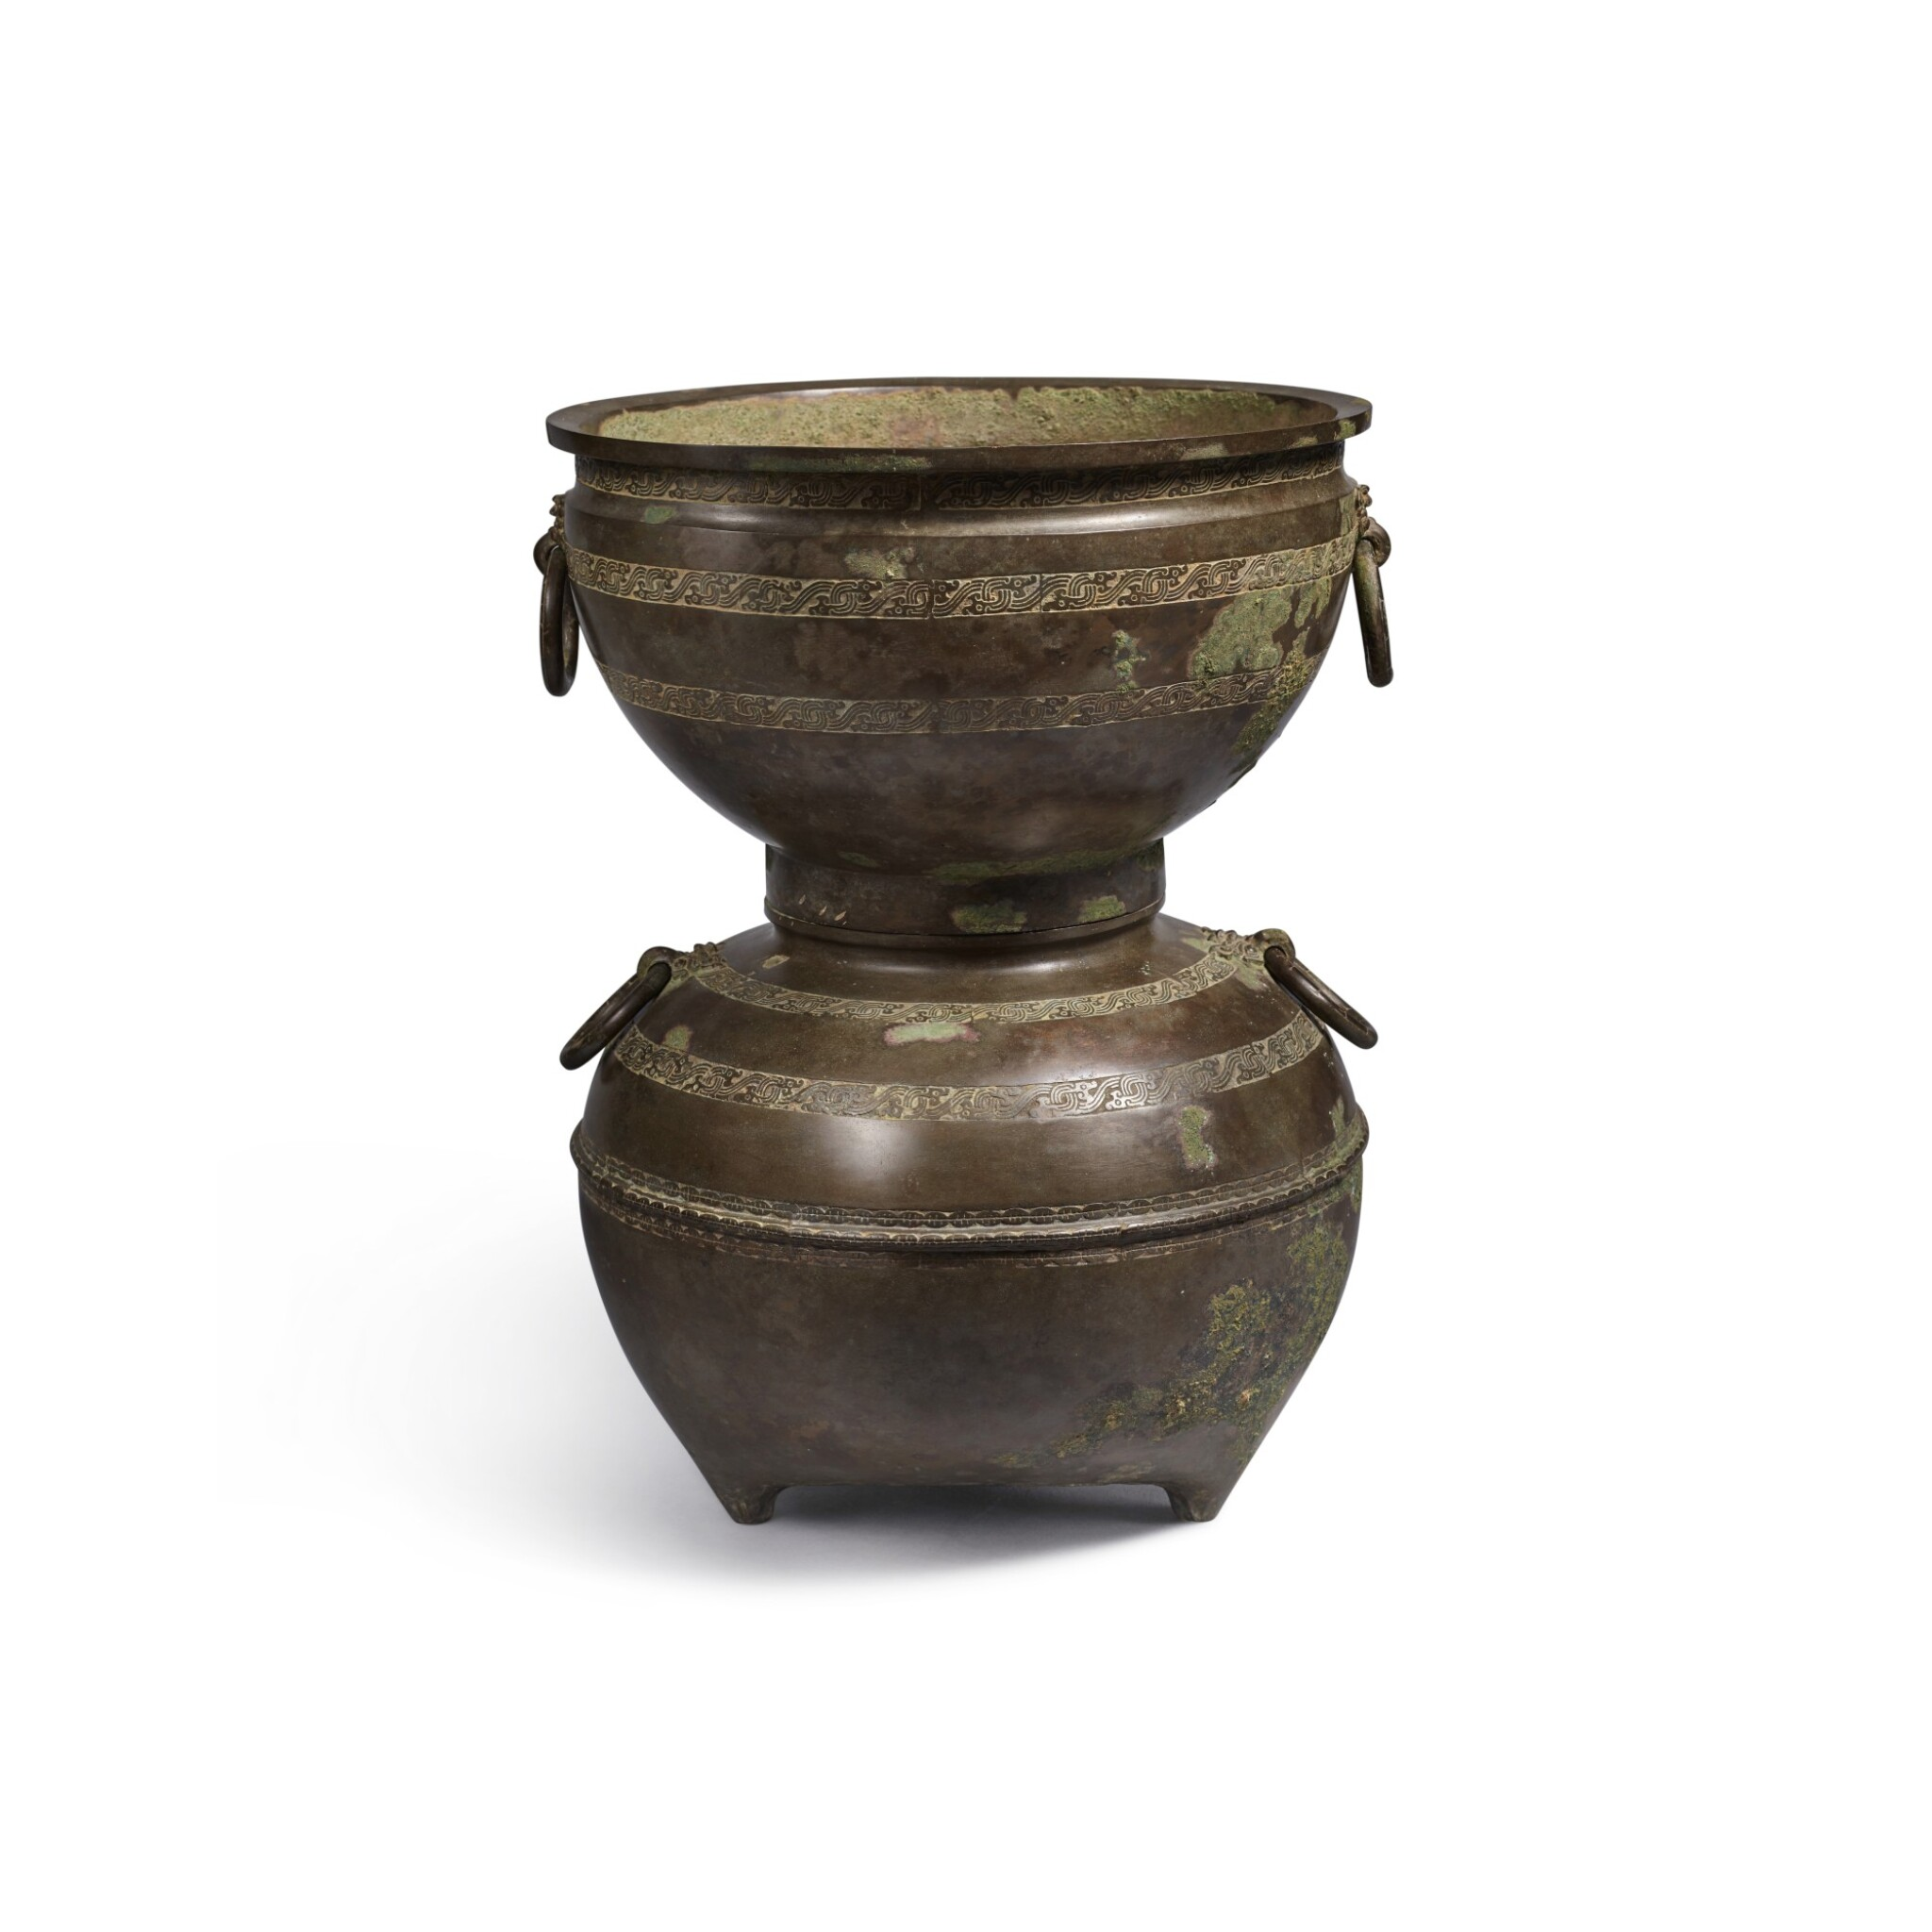 View full screen - View 1 of Lot 20. An archaic bronze ritual food steamer (Yan), Eastern Zhou dynasty, early Warring States period   東周 戰國初 青銅交龍紋鋪首耳甗.